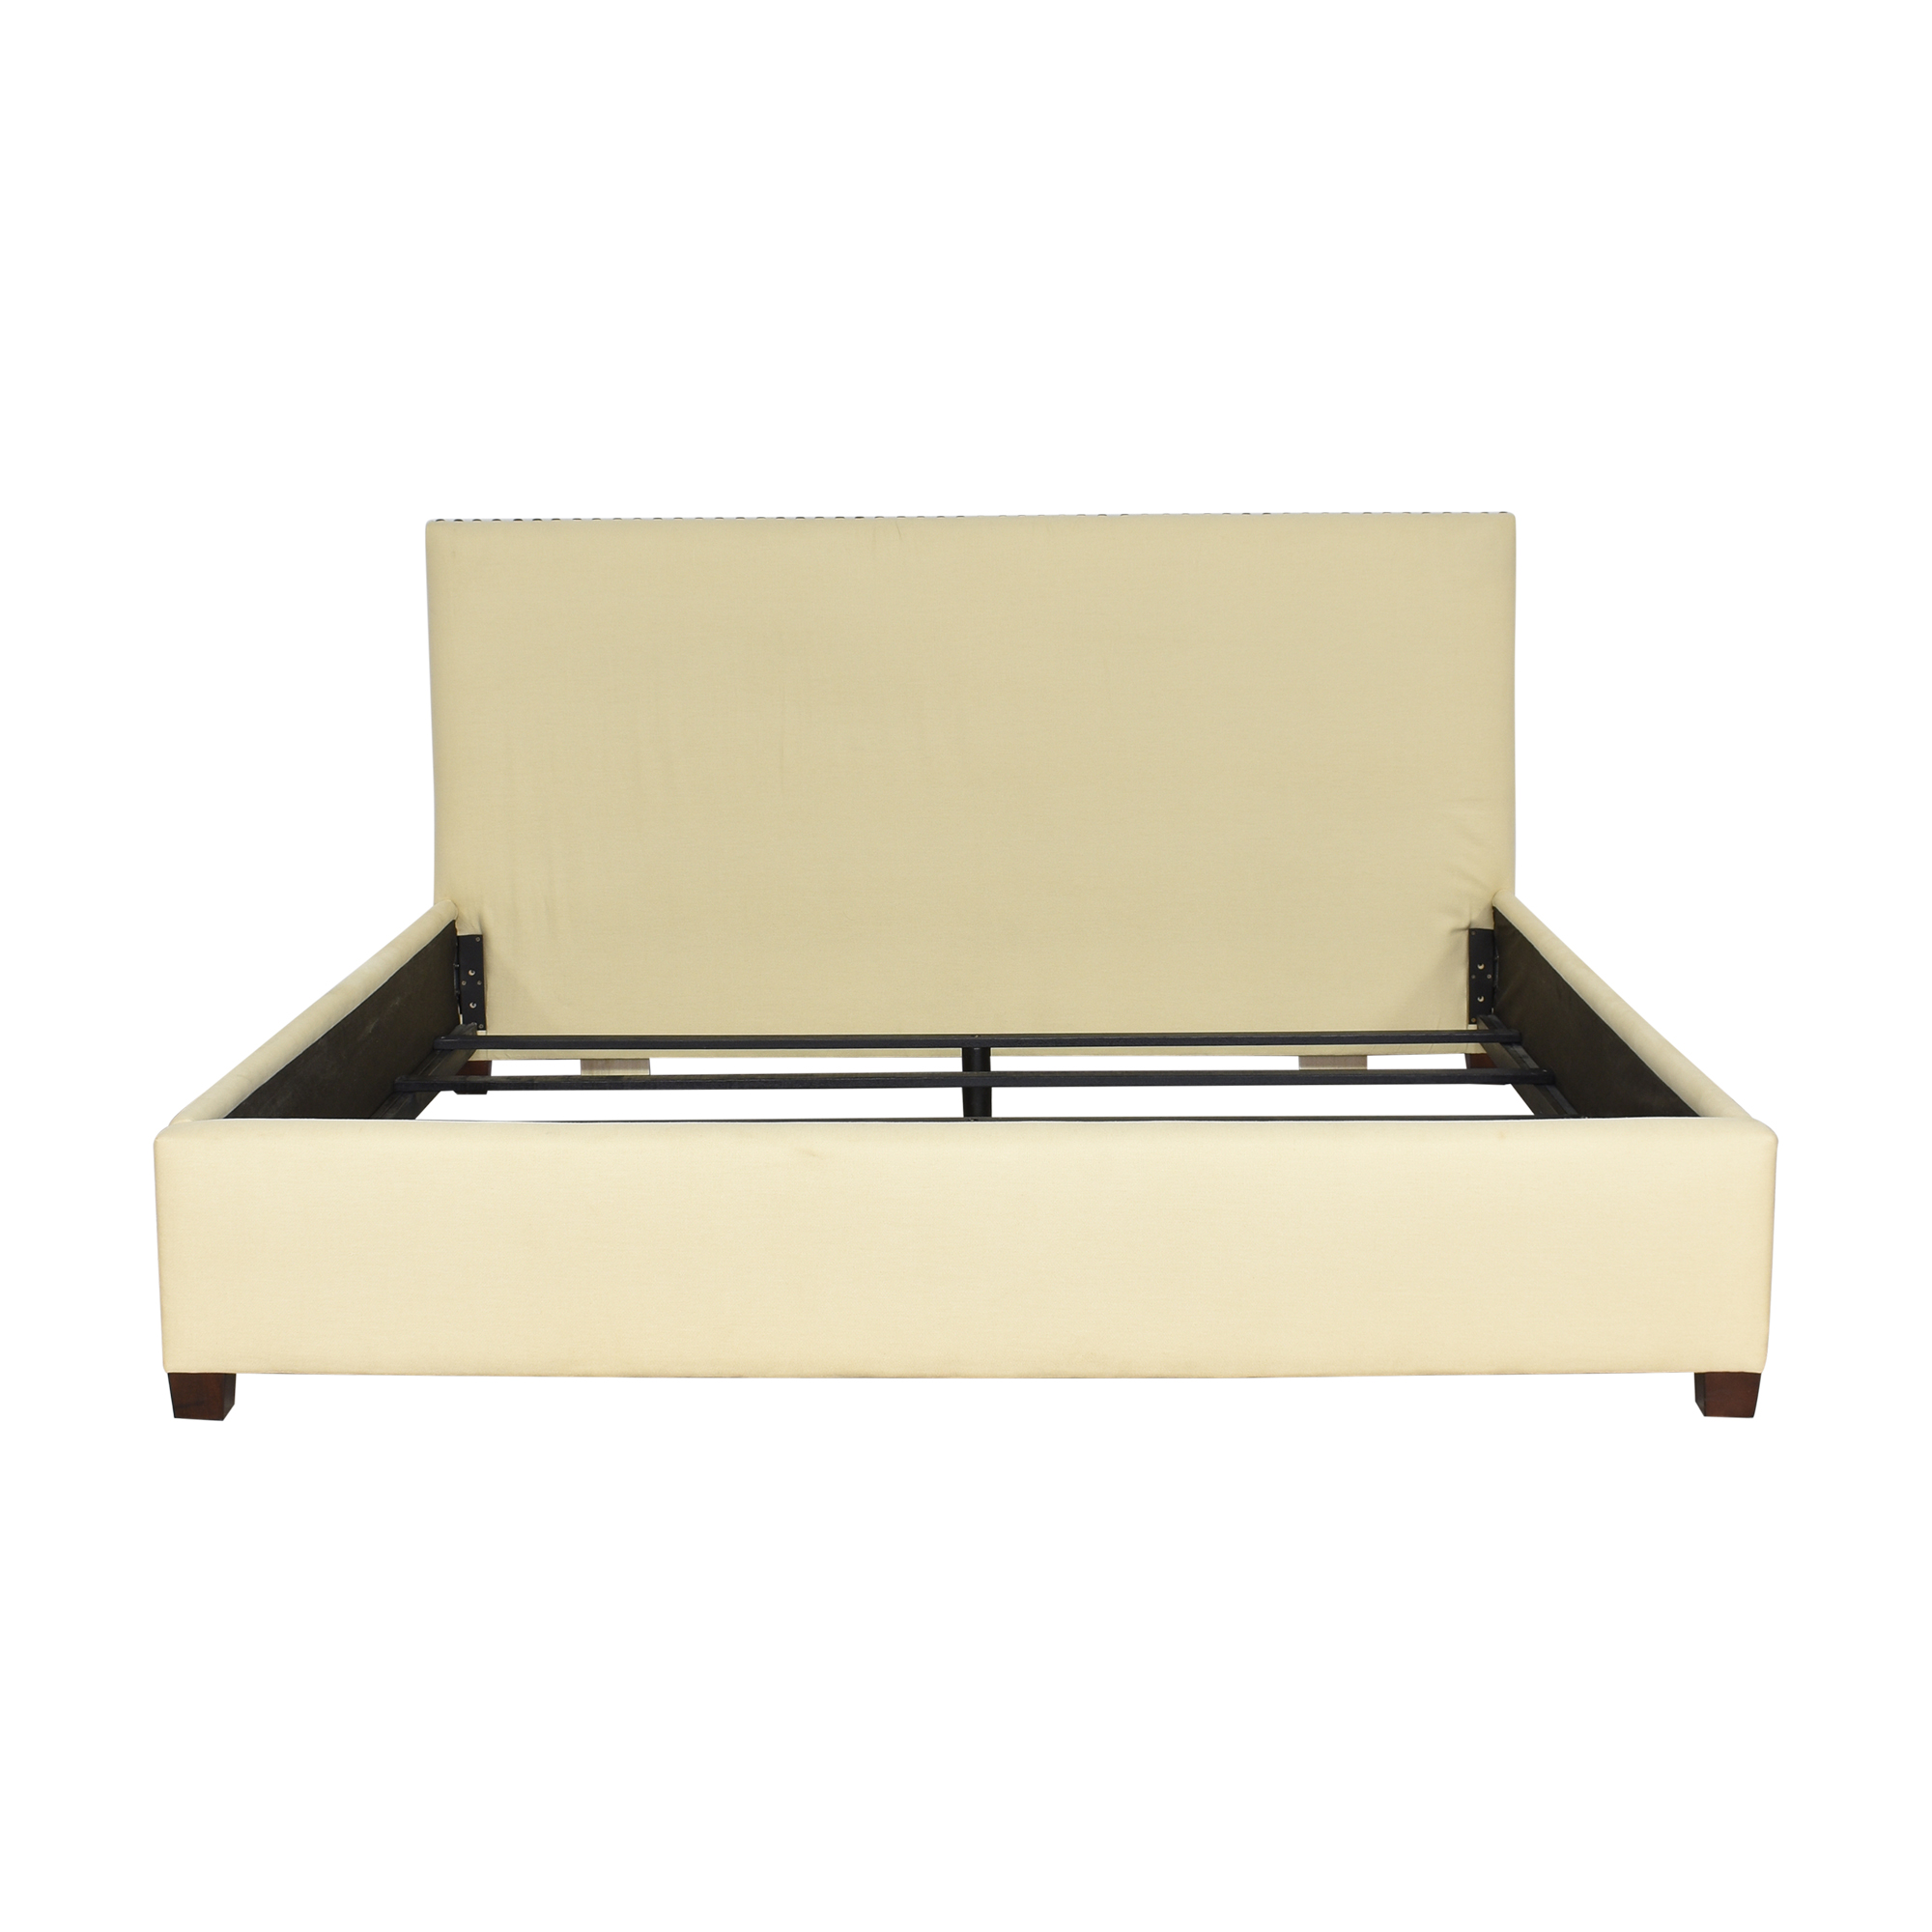 Pottery Barn Pottery Barn Raleigh Square Upholstered Low King Bed coupon